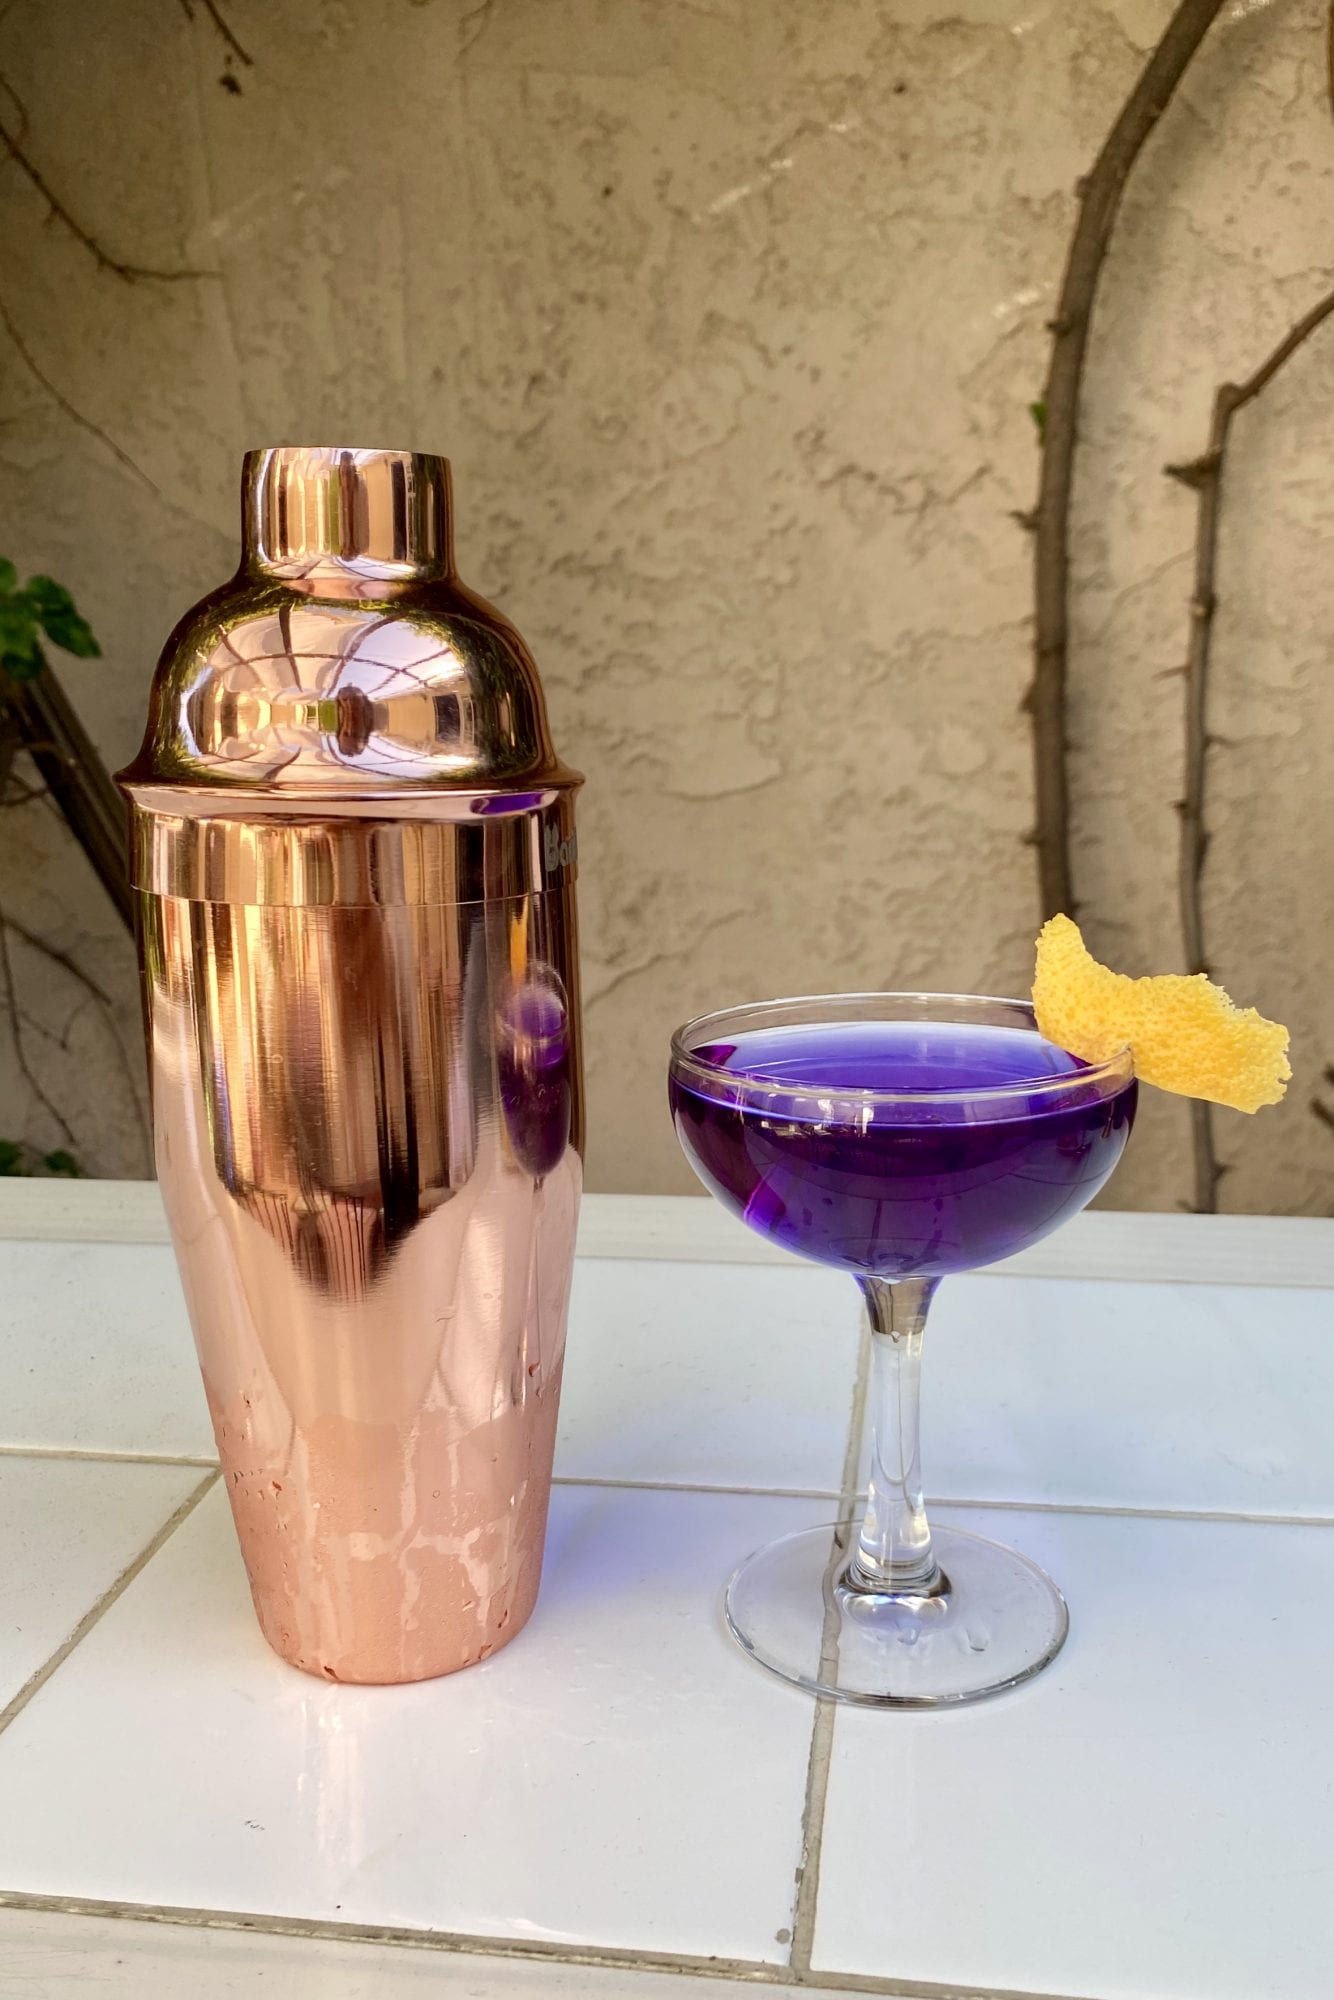 Top 5 Gin Cocktails to Make at Your Next Virtual Happy Hour, a blog post by Liz in Los Angeles, Los Angeles Lifestyle Blogger: an image of a gin cocktail and a cocktail shaker